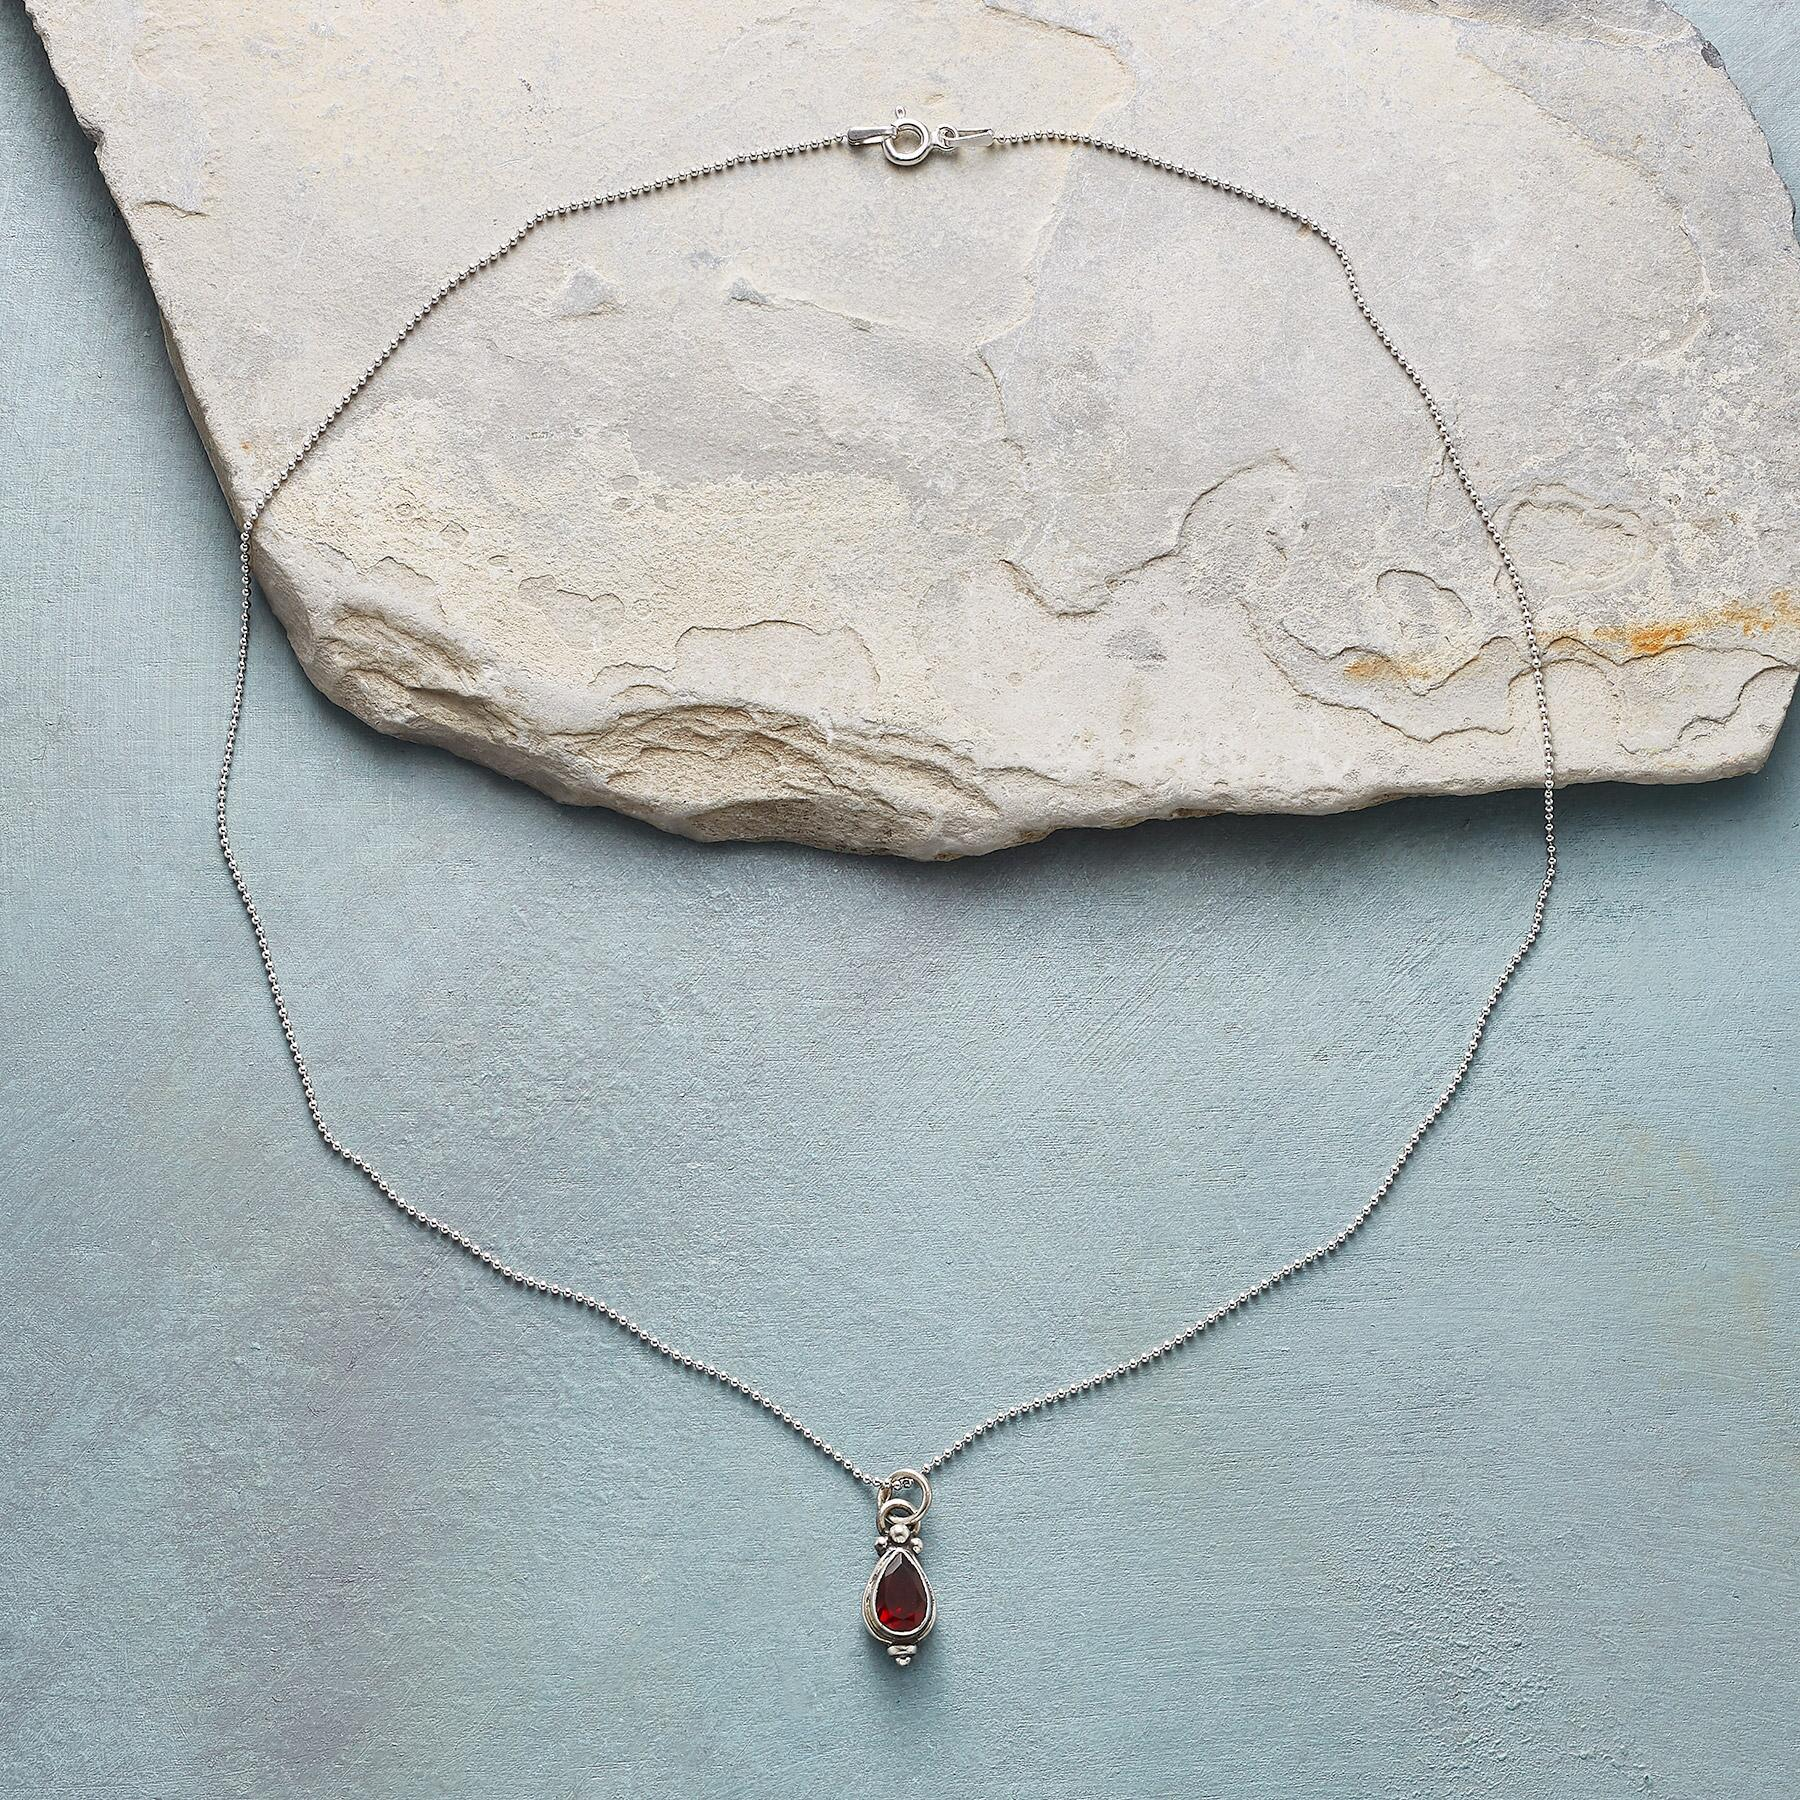 ART OF LOVE BIRTHSTONE NECKLACE: View 2